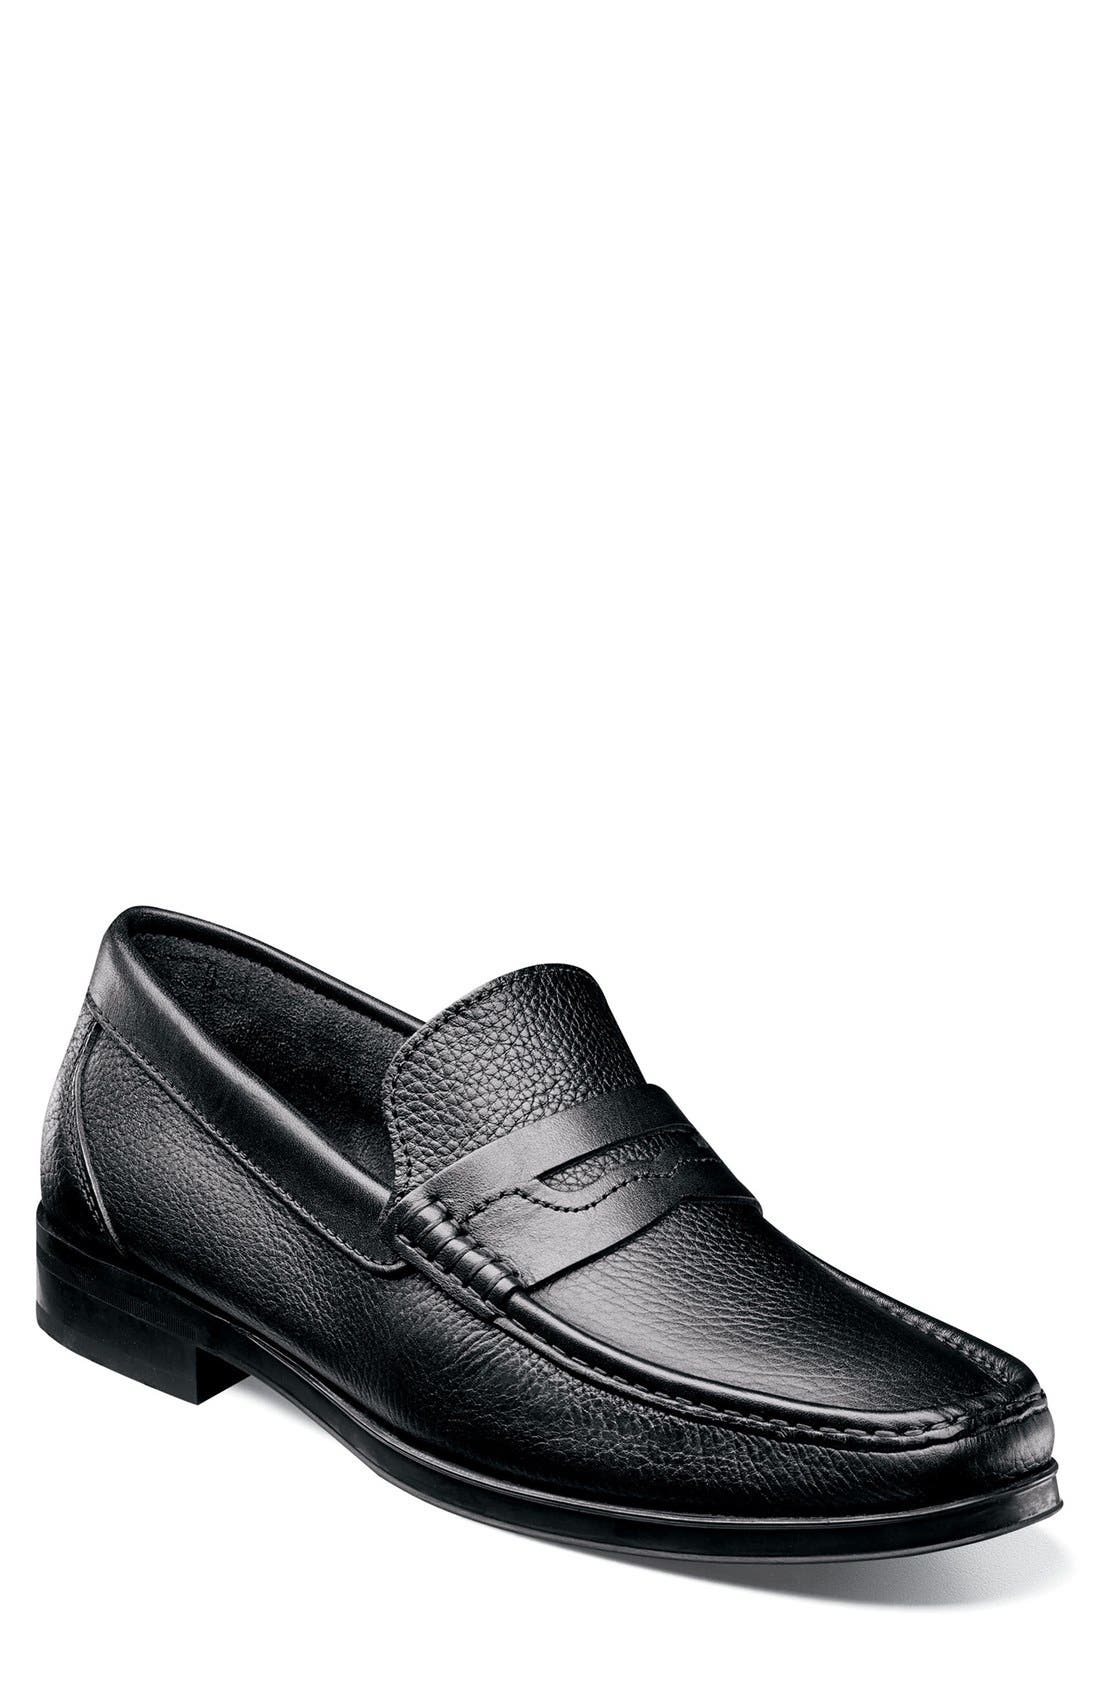 Main Image - Florsheim Westbrook Penny Loafer (Men)